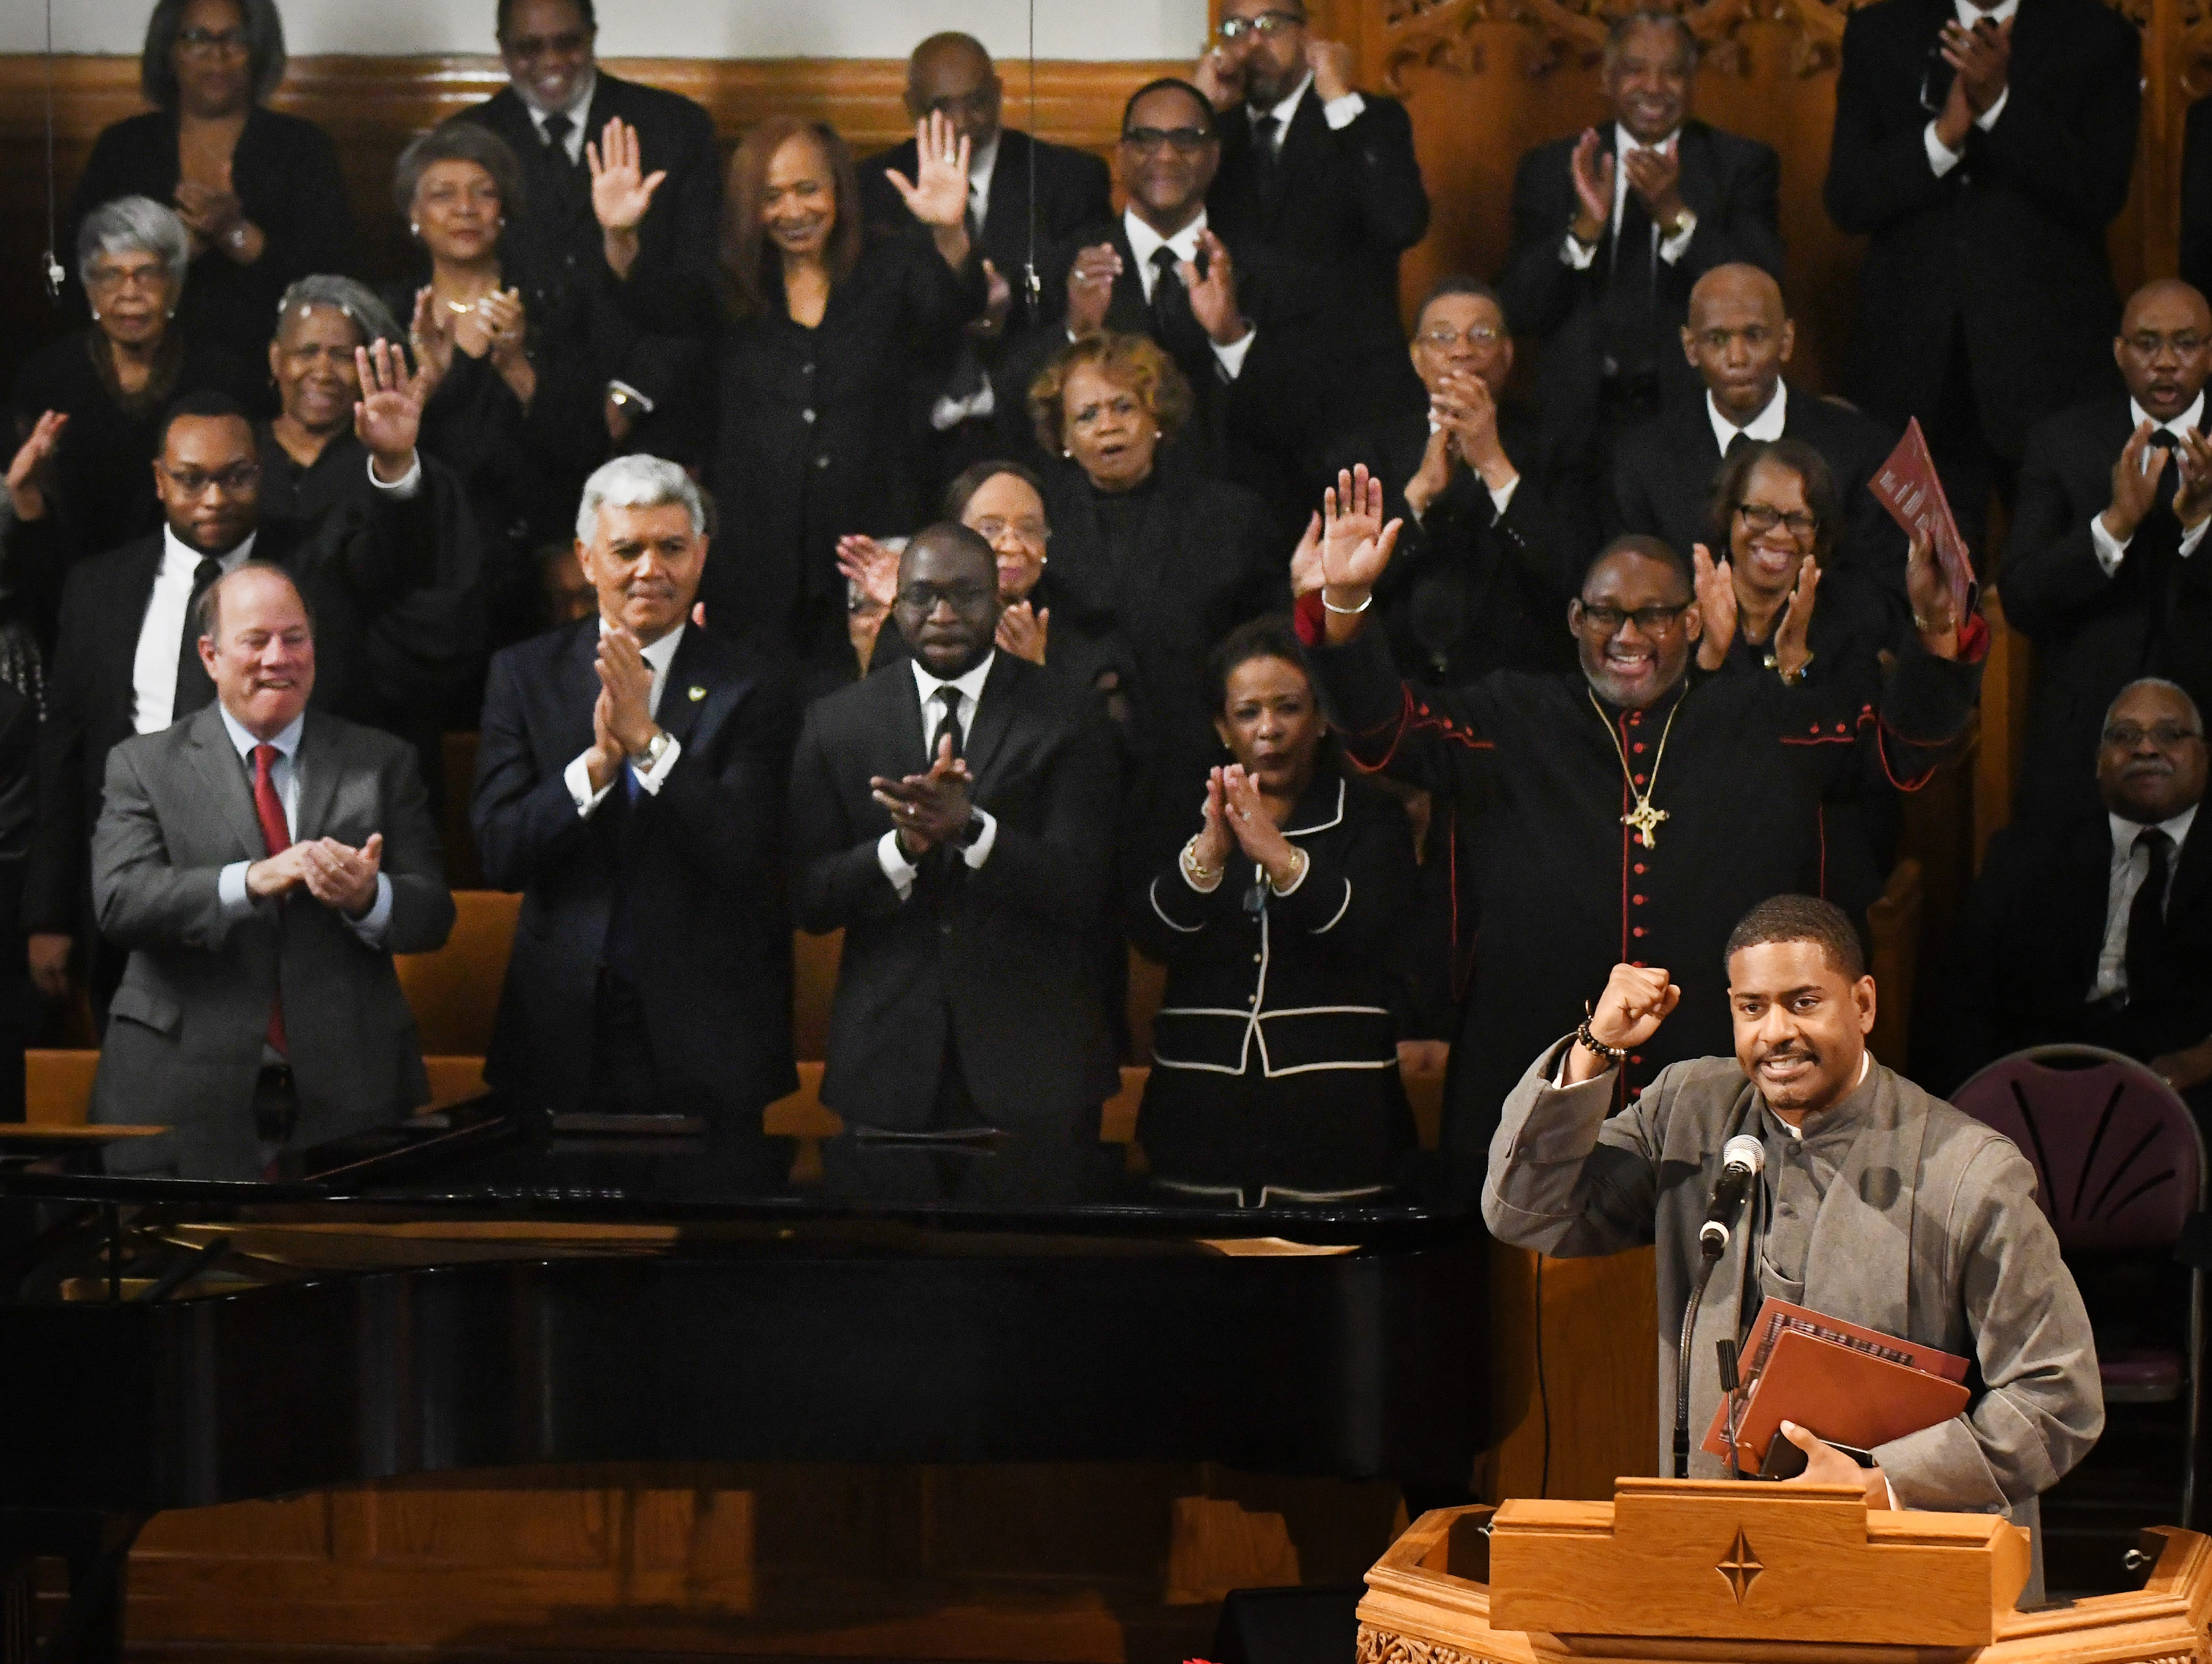 Rev. Dr. Otis Moss III,l Senior Pastor of Trinity United Church of Christ in Chicago has the congregation applauding after a creative eulogy for Judge Damon Keith.